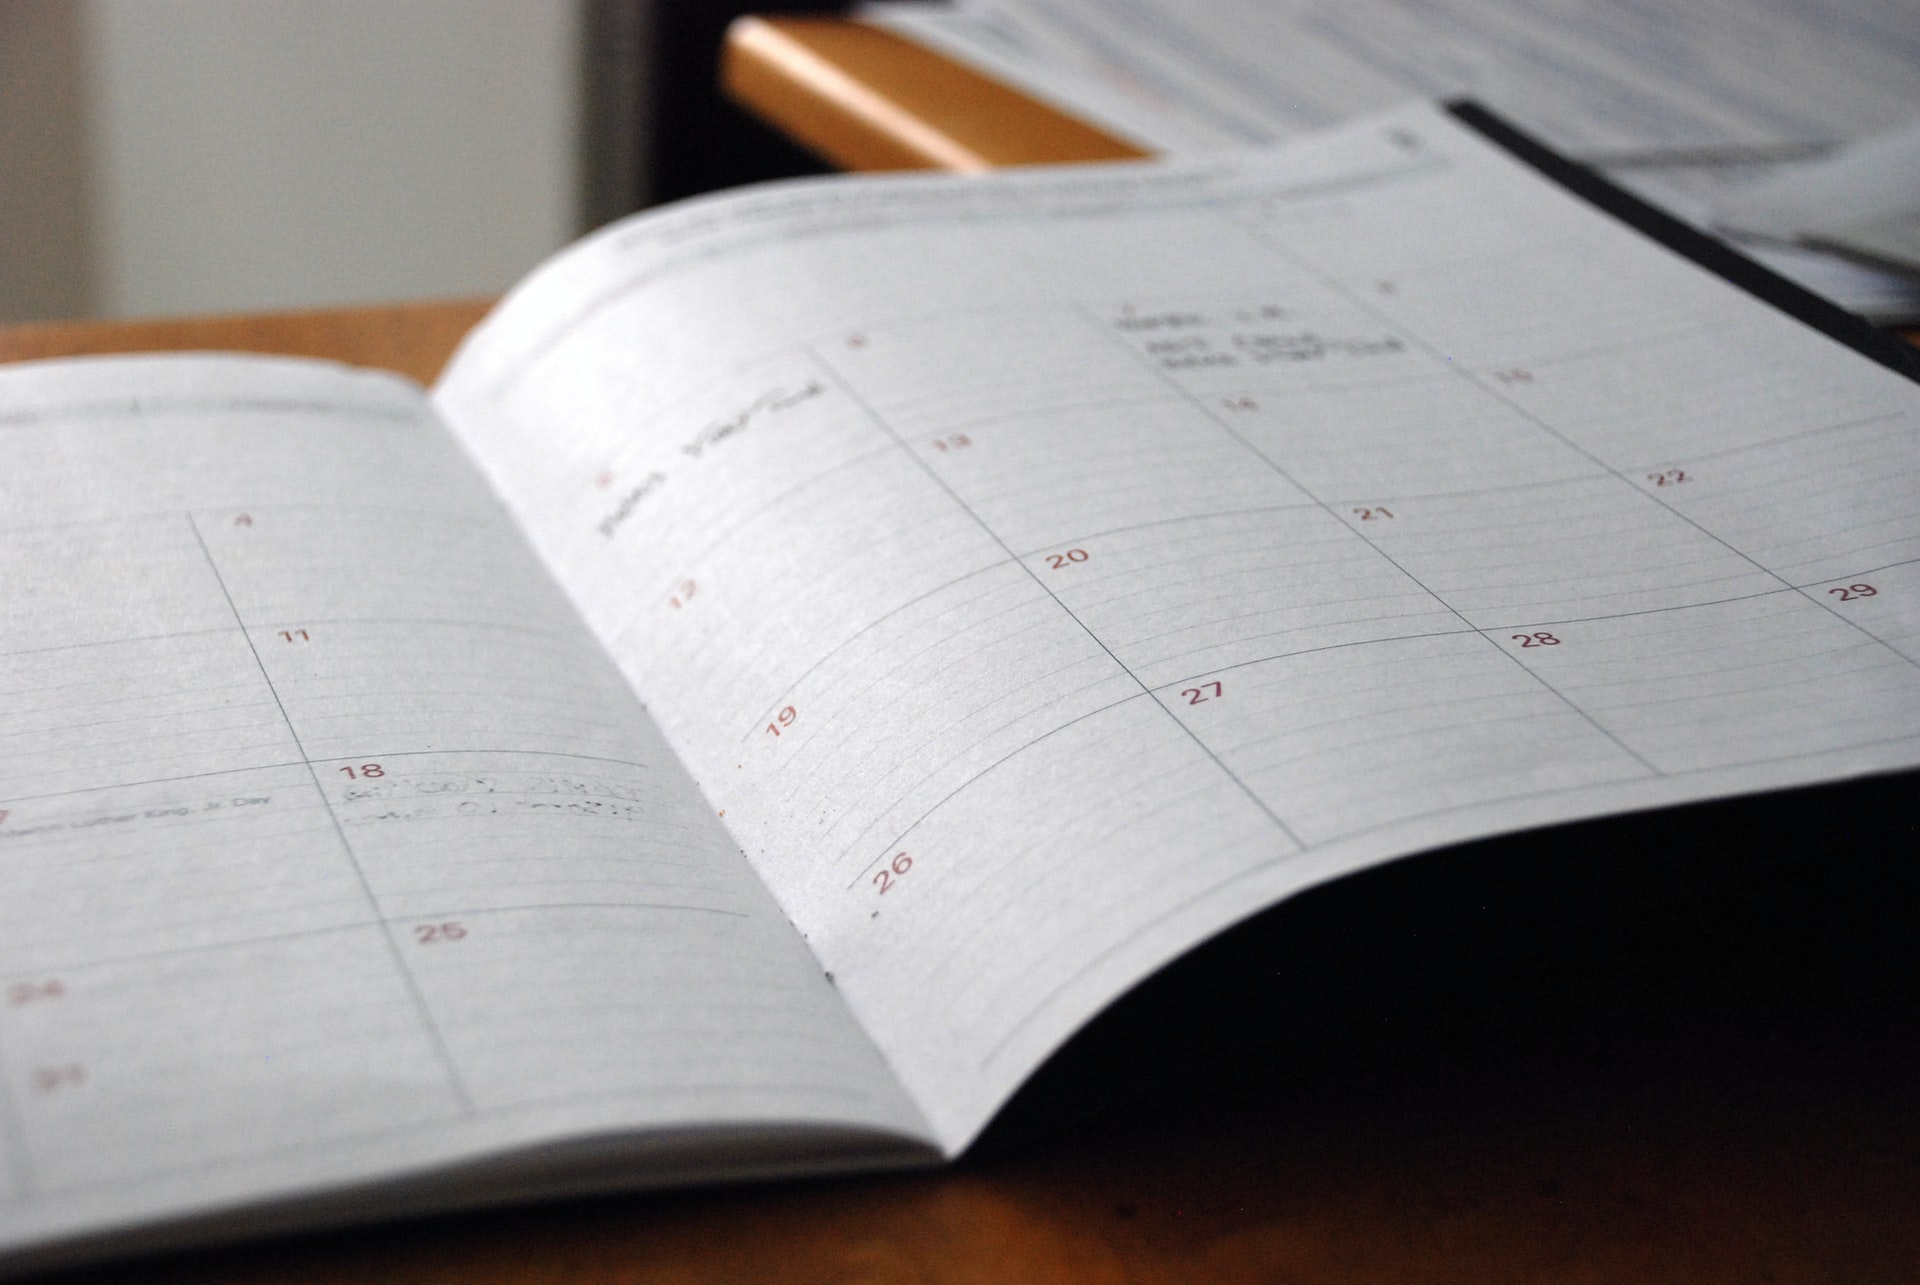 A close-up of slightly out-of-focus monthly planner printed on a white paper.